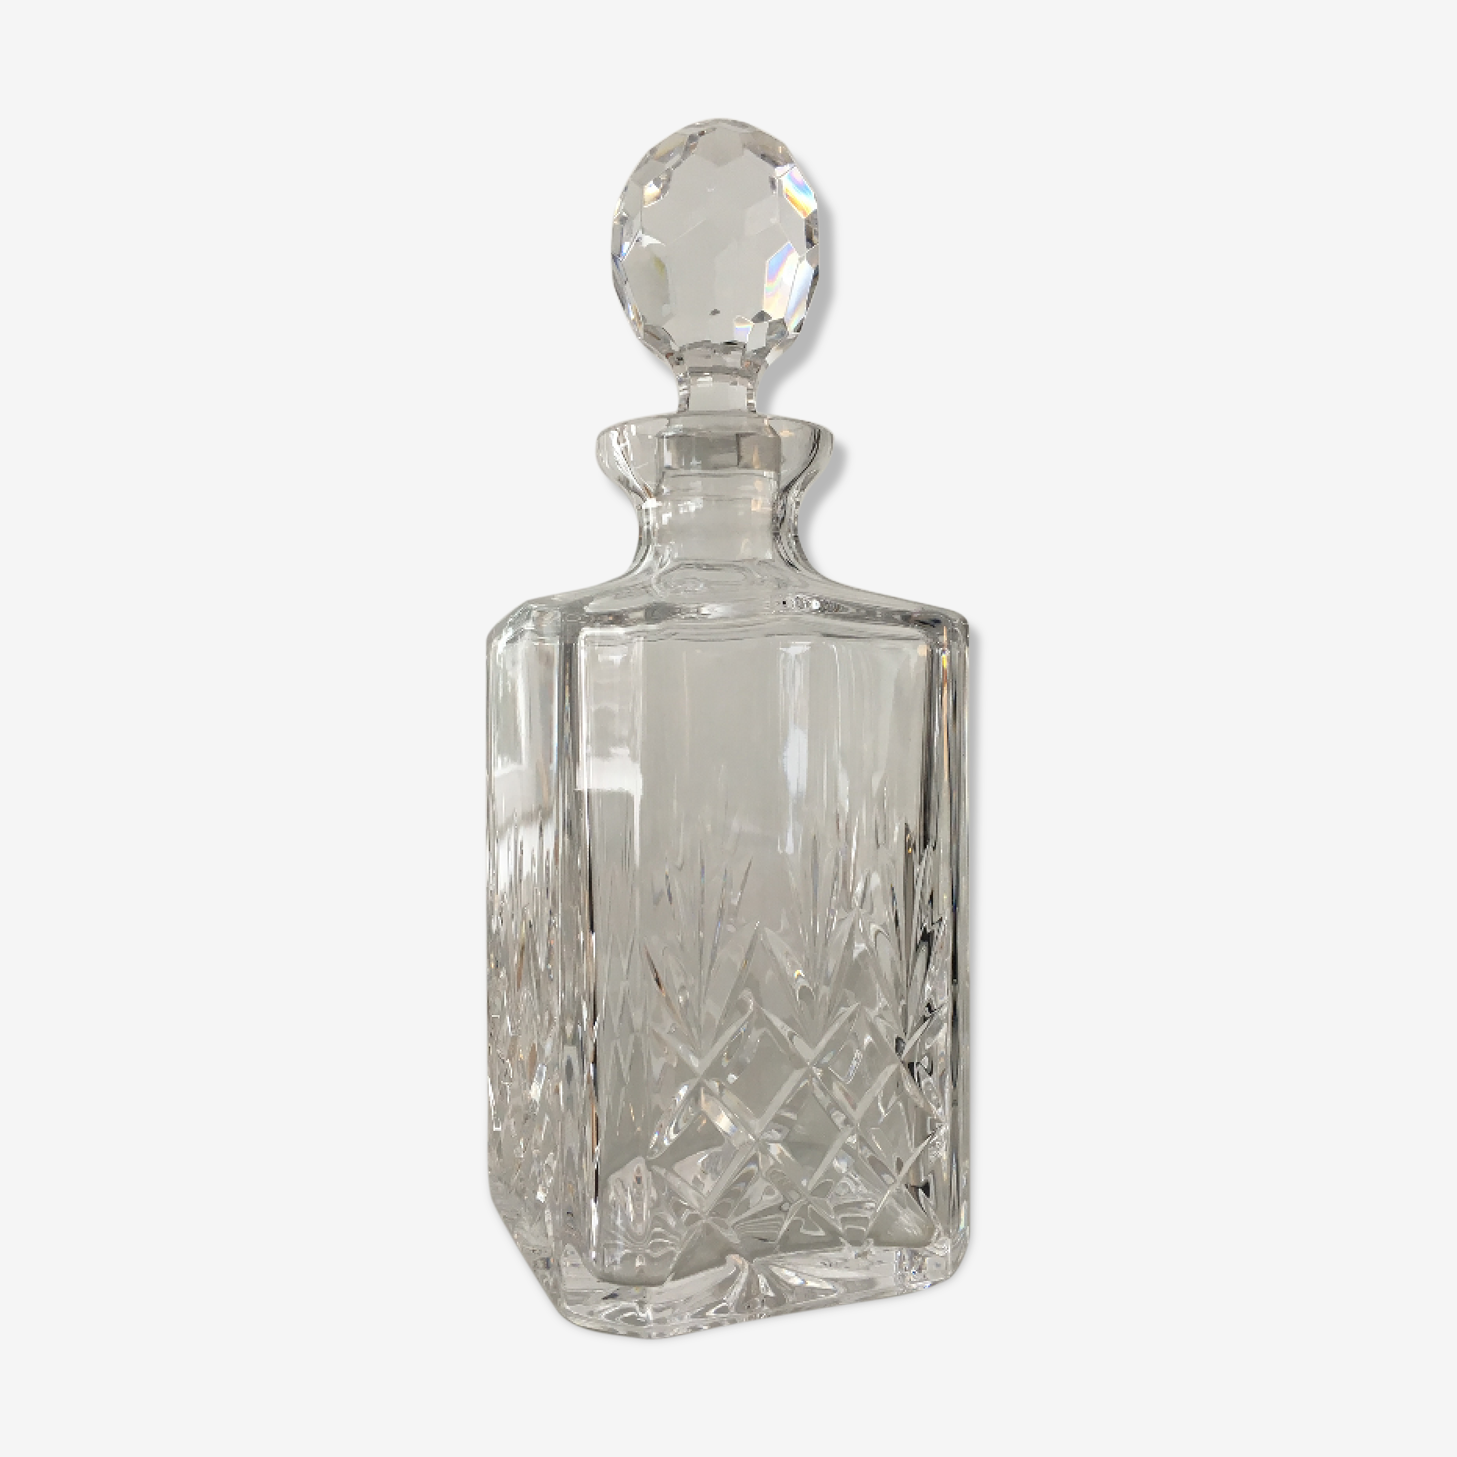 Carafe crystal with its cap